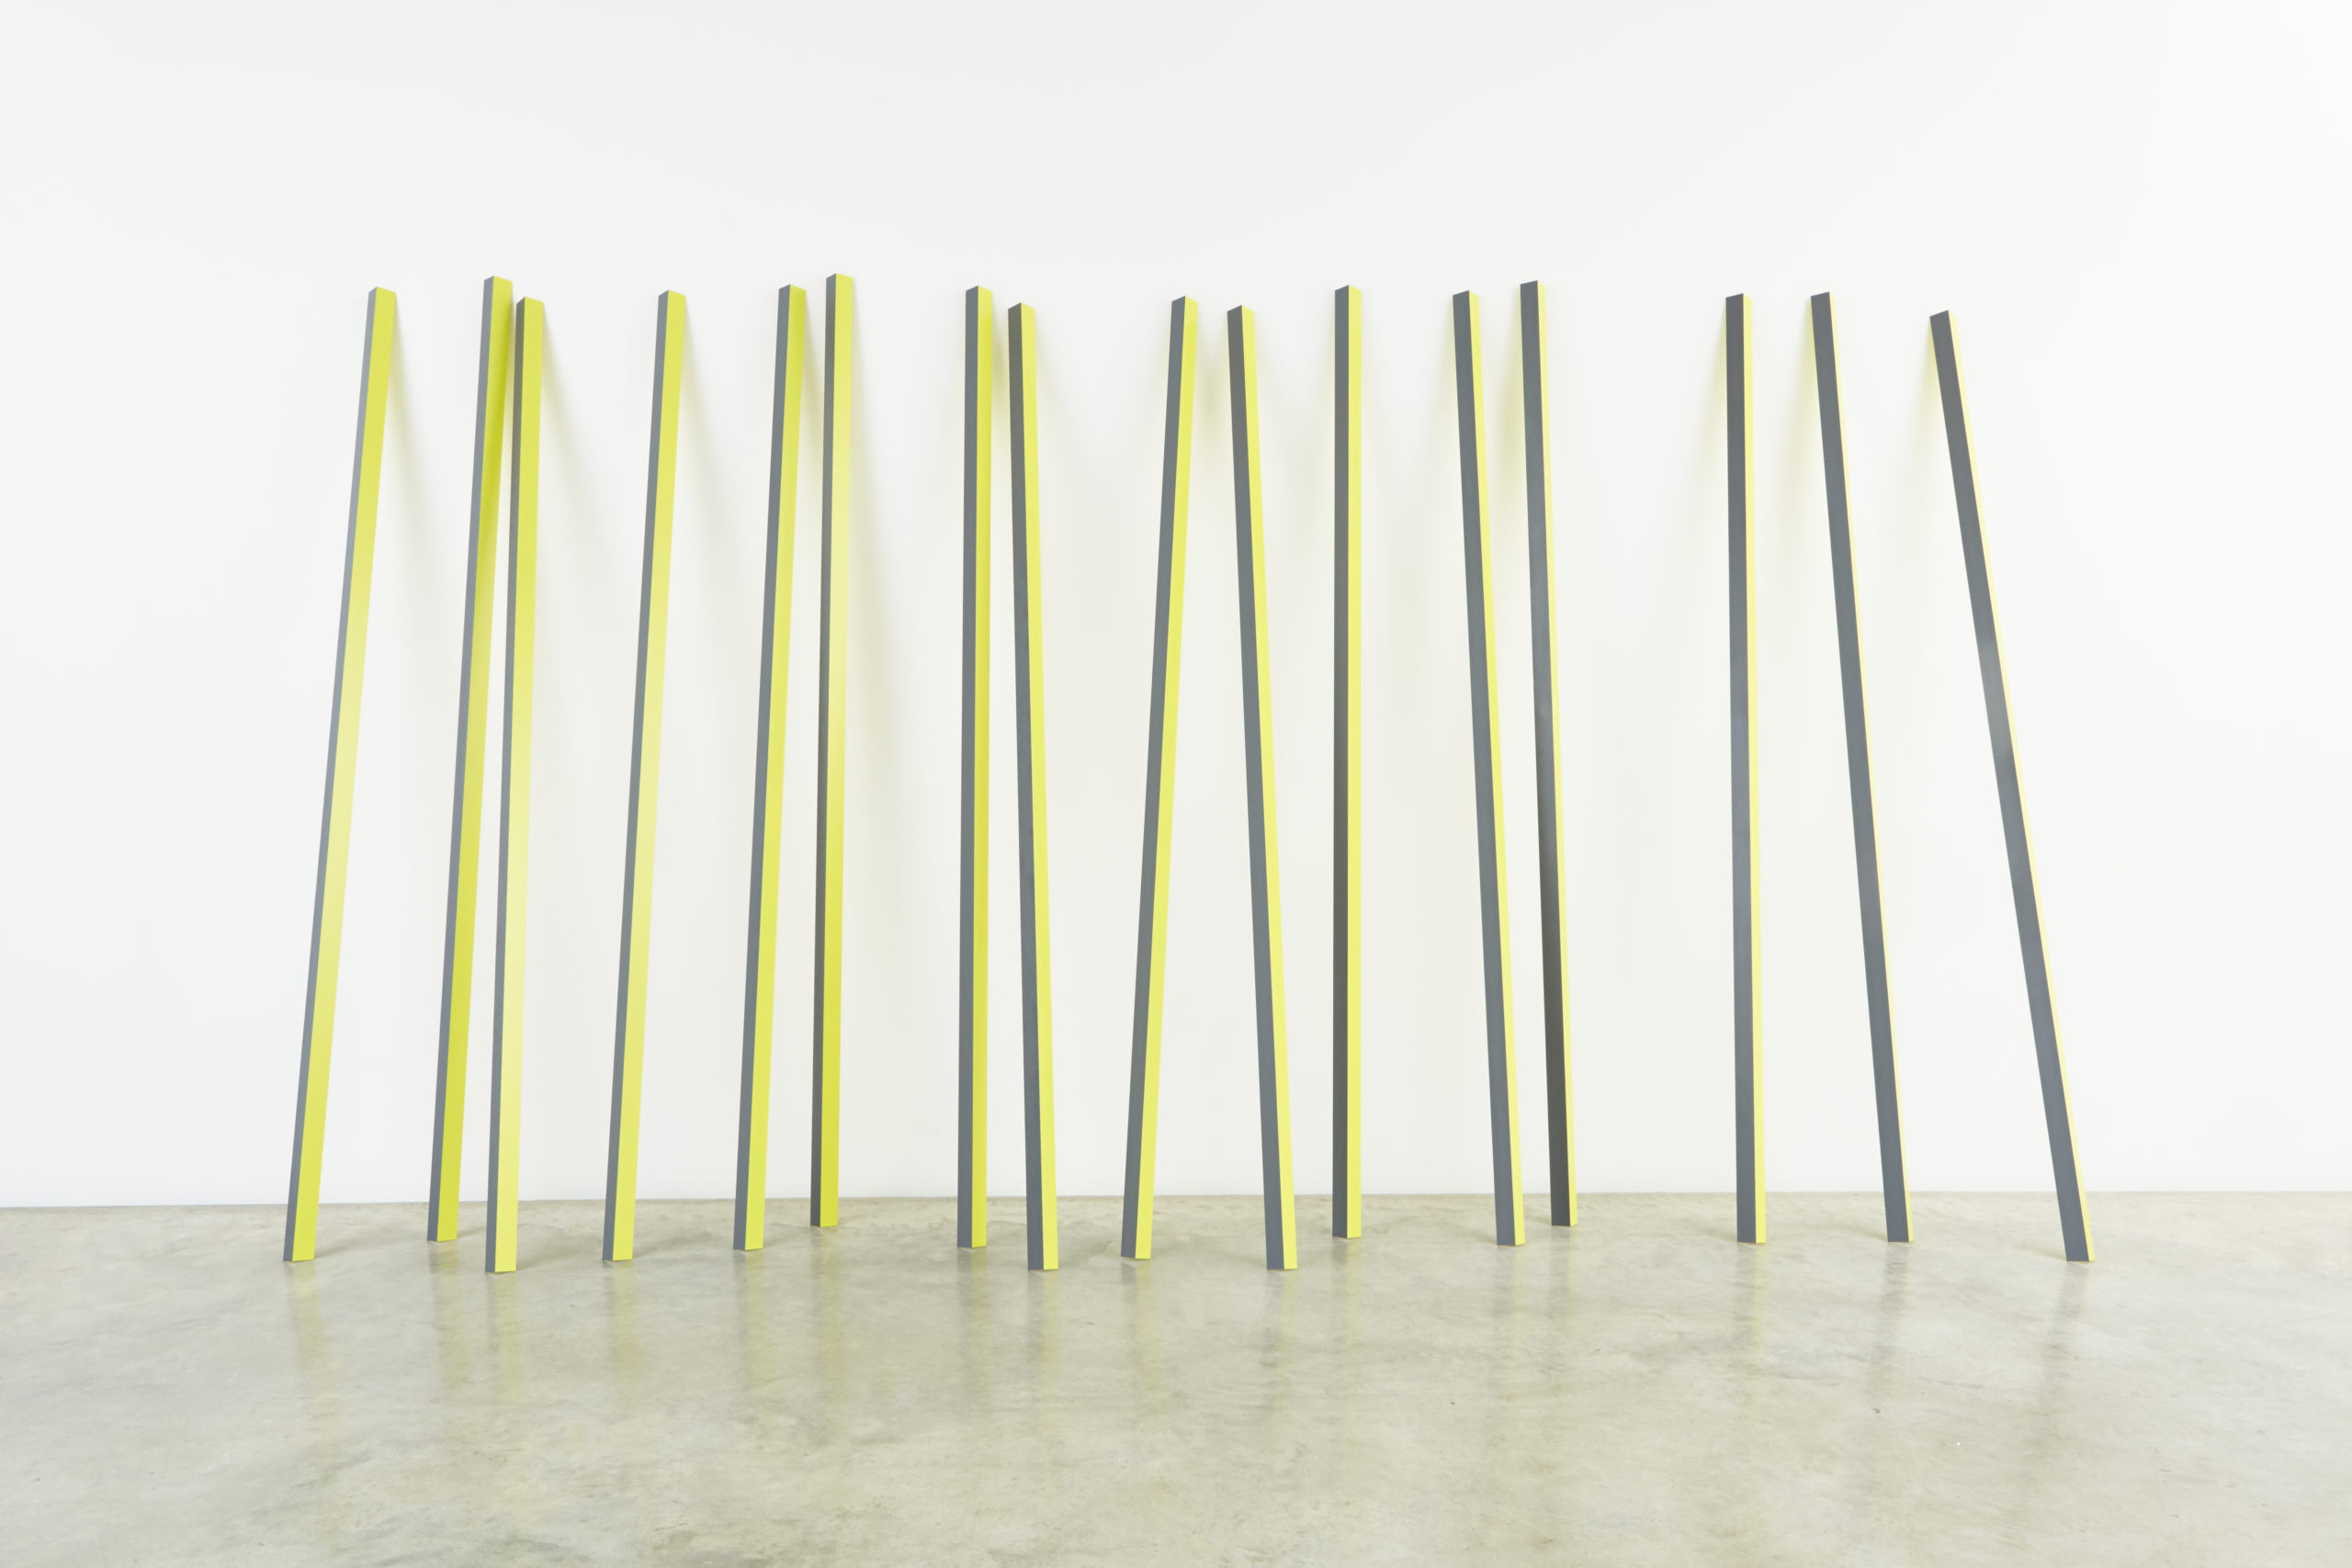 Sixteen rectangular yellow and grey aluminum poles lean up against a wall